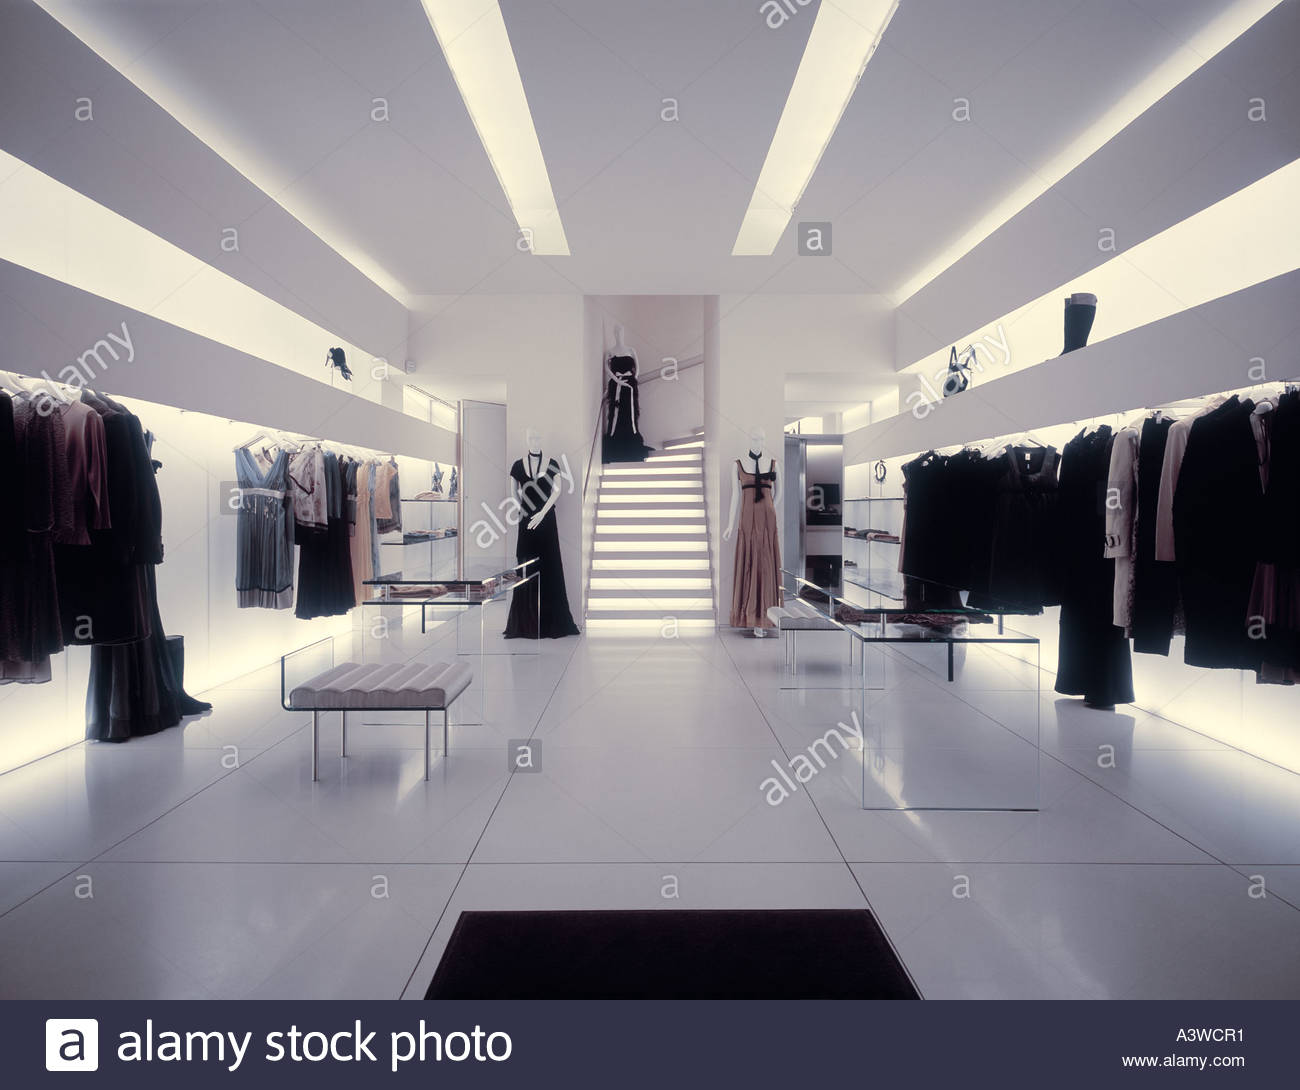 Clothing stores in paris france Clothing stores